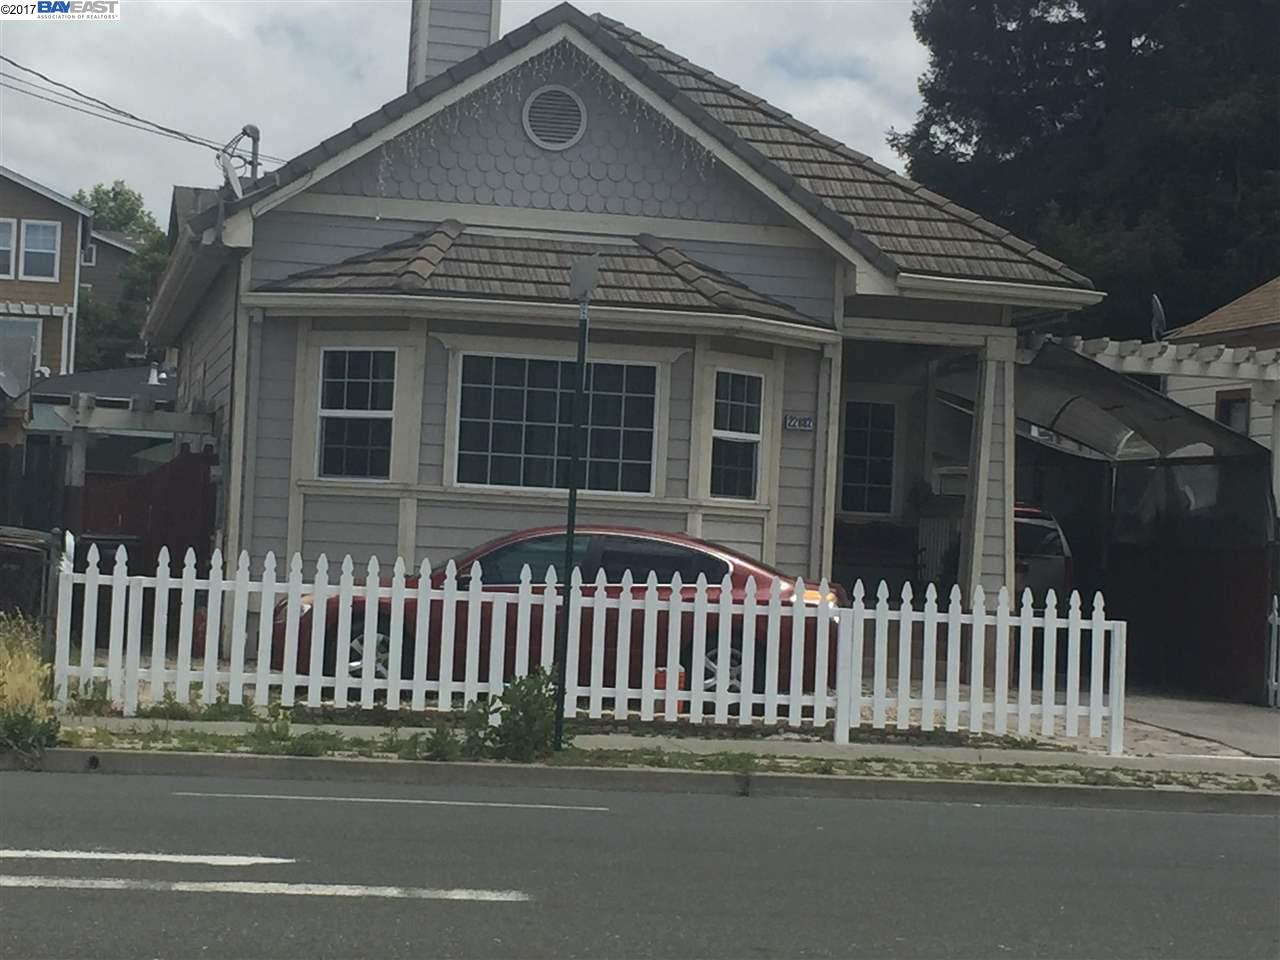 22882 Grand St | HAYWARD | 1226 | 94541